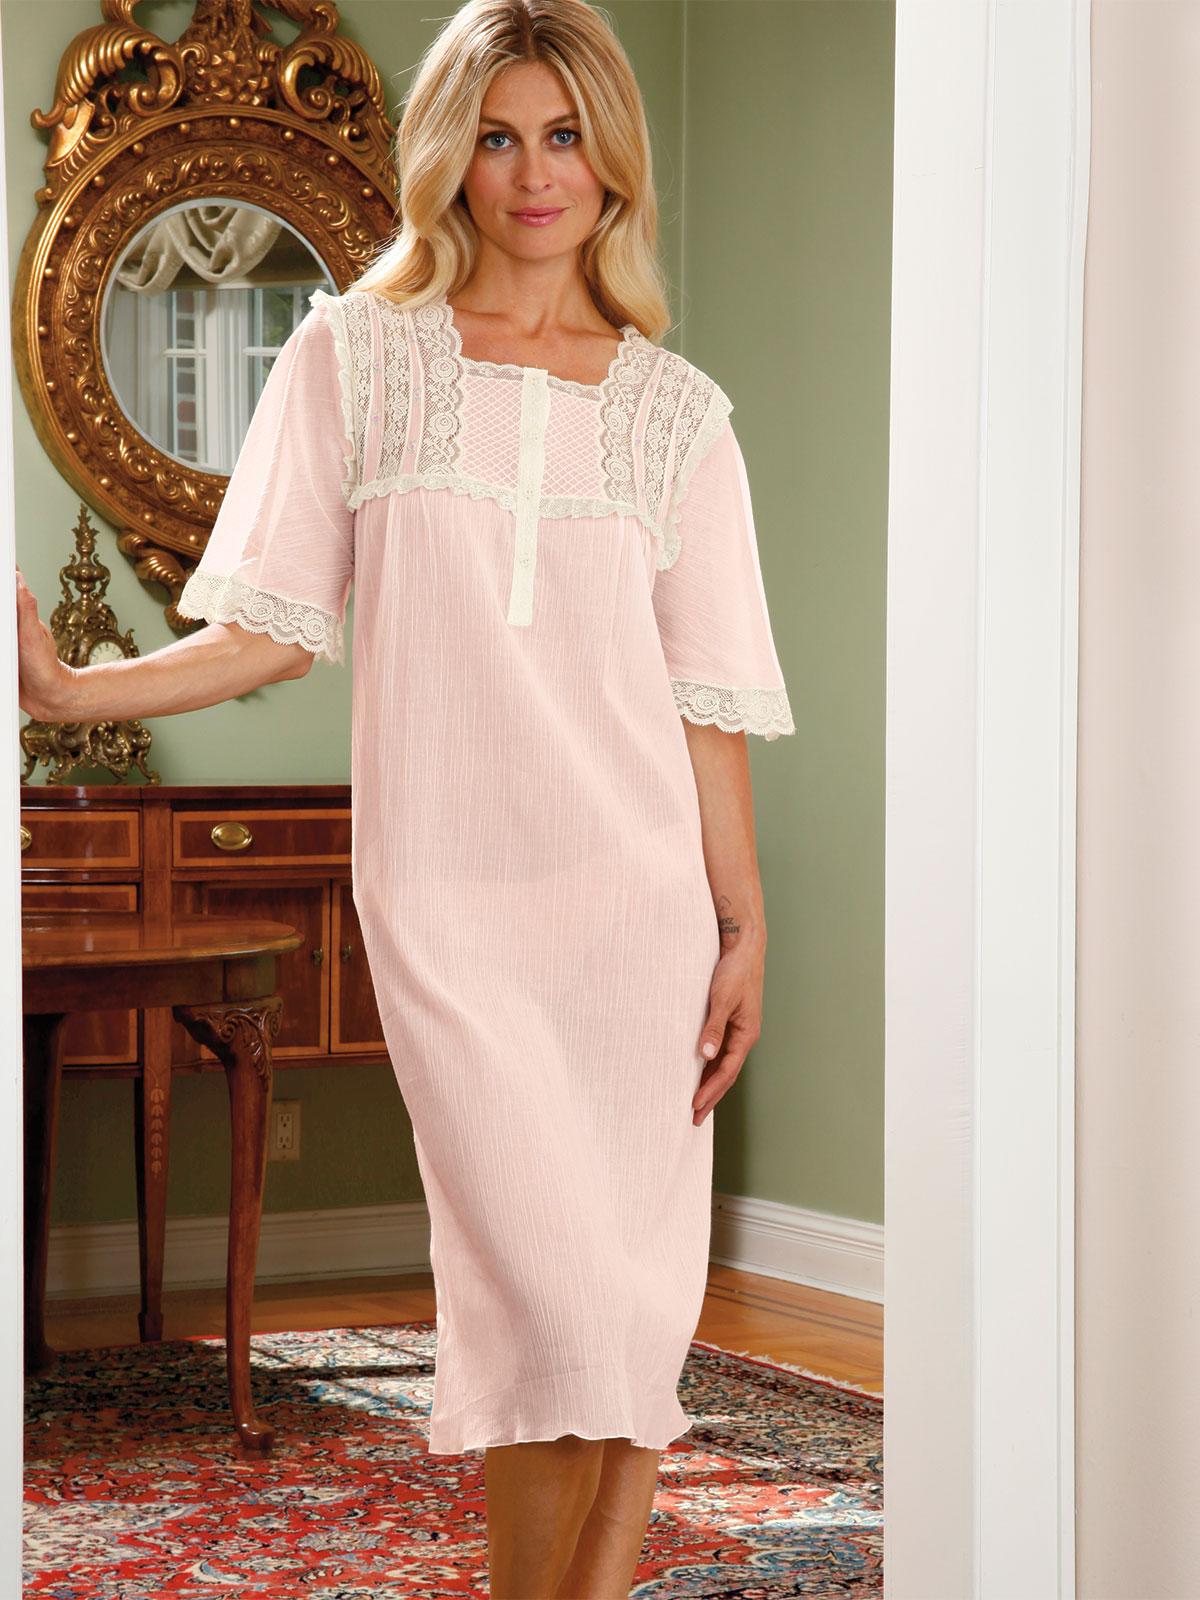 Kristina Nightgown Luxury Nightwear Schweitzer Linen